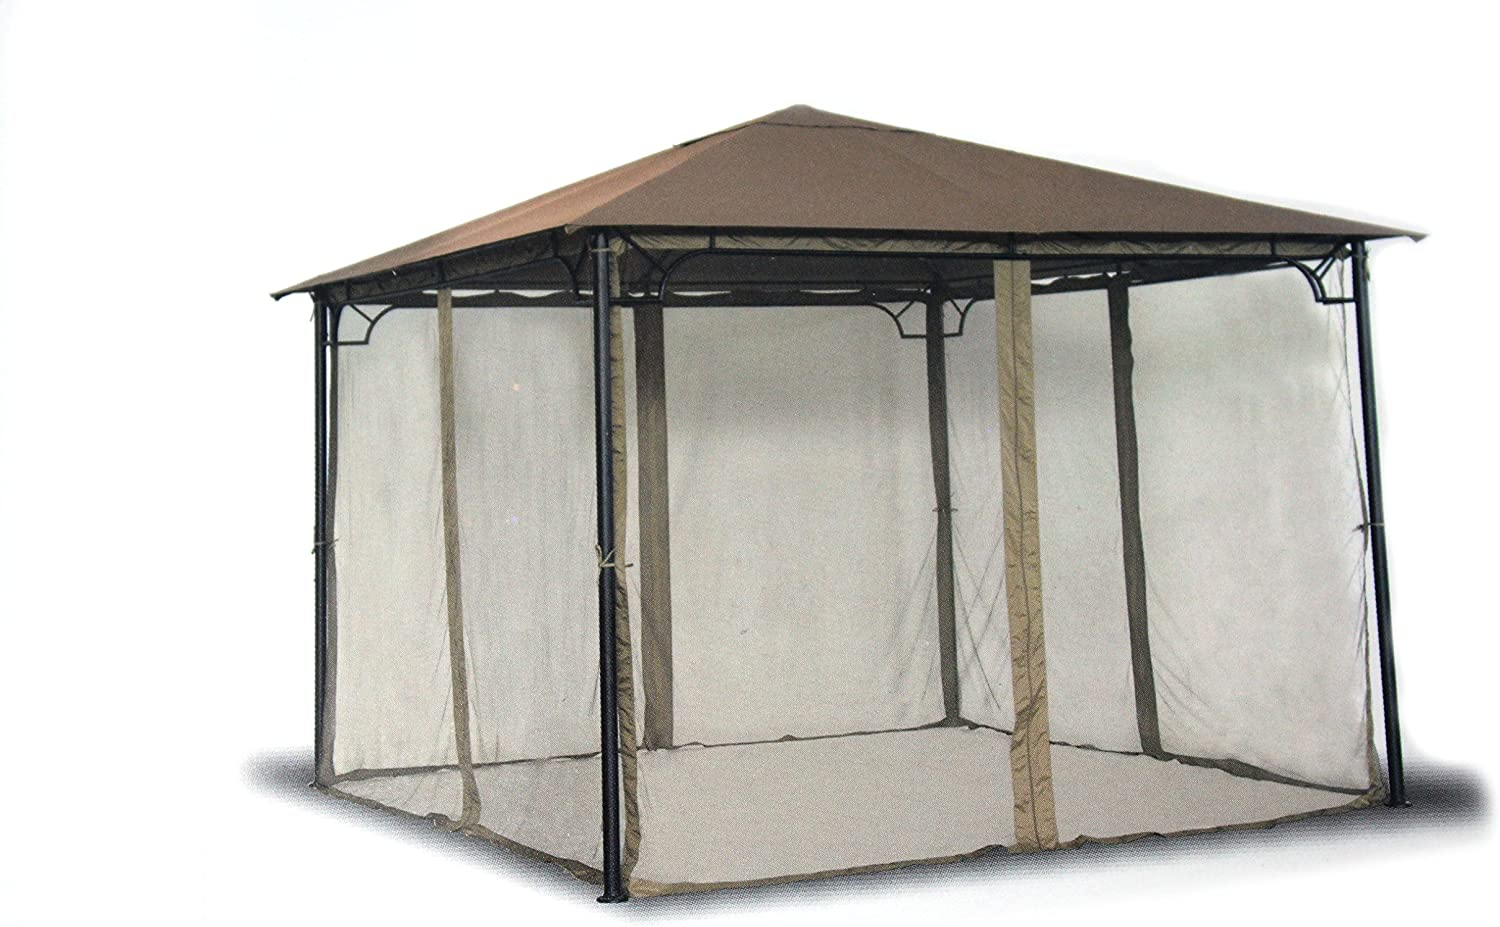 Living Accents 10ft x 10ft 4-Panel Universal Rain Proof Replacement Gazebo Mosquito Netting Gazebo sold separately